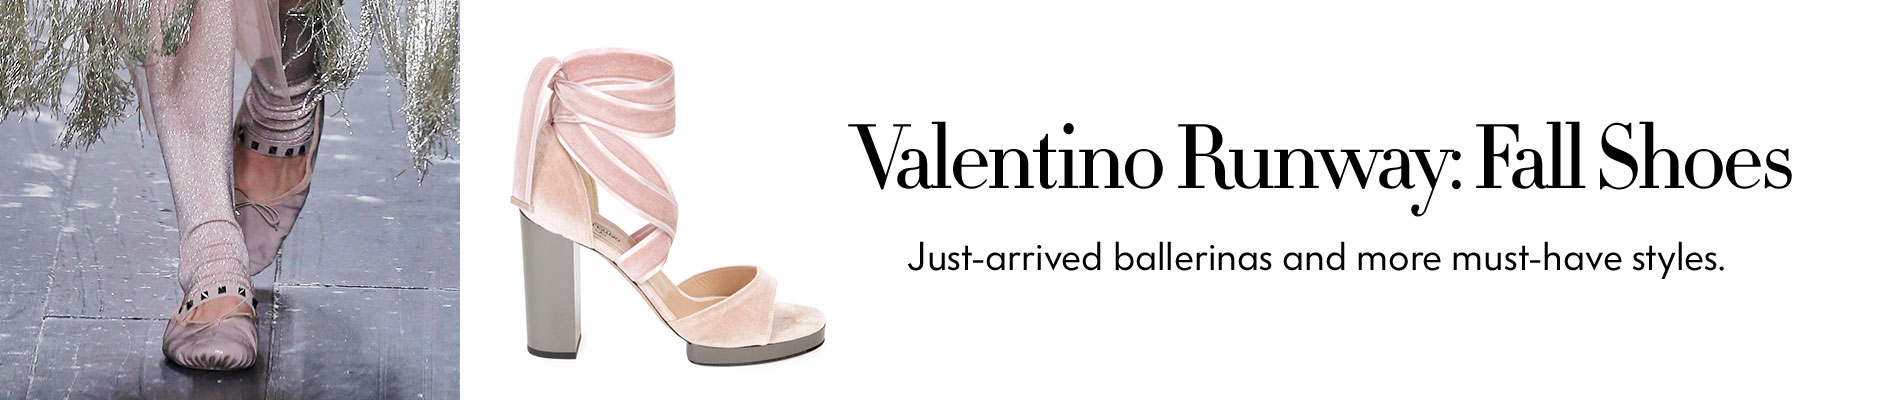 Valentino Runway: Fall Shoes - Just-arrived ballerinas and more must-have styles.